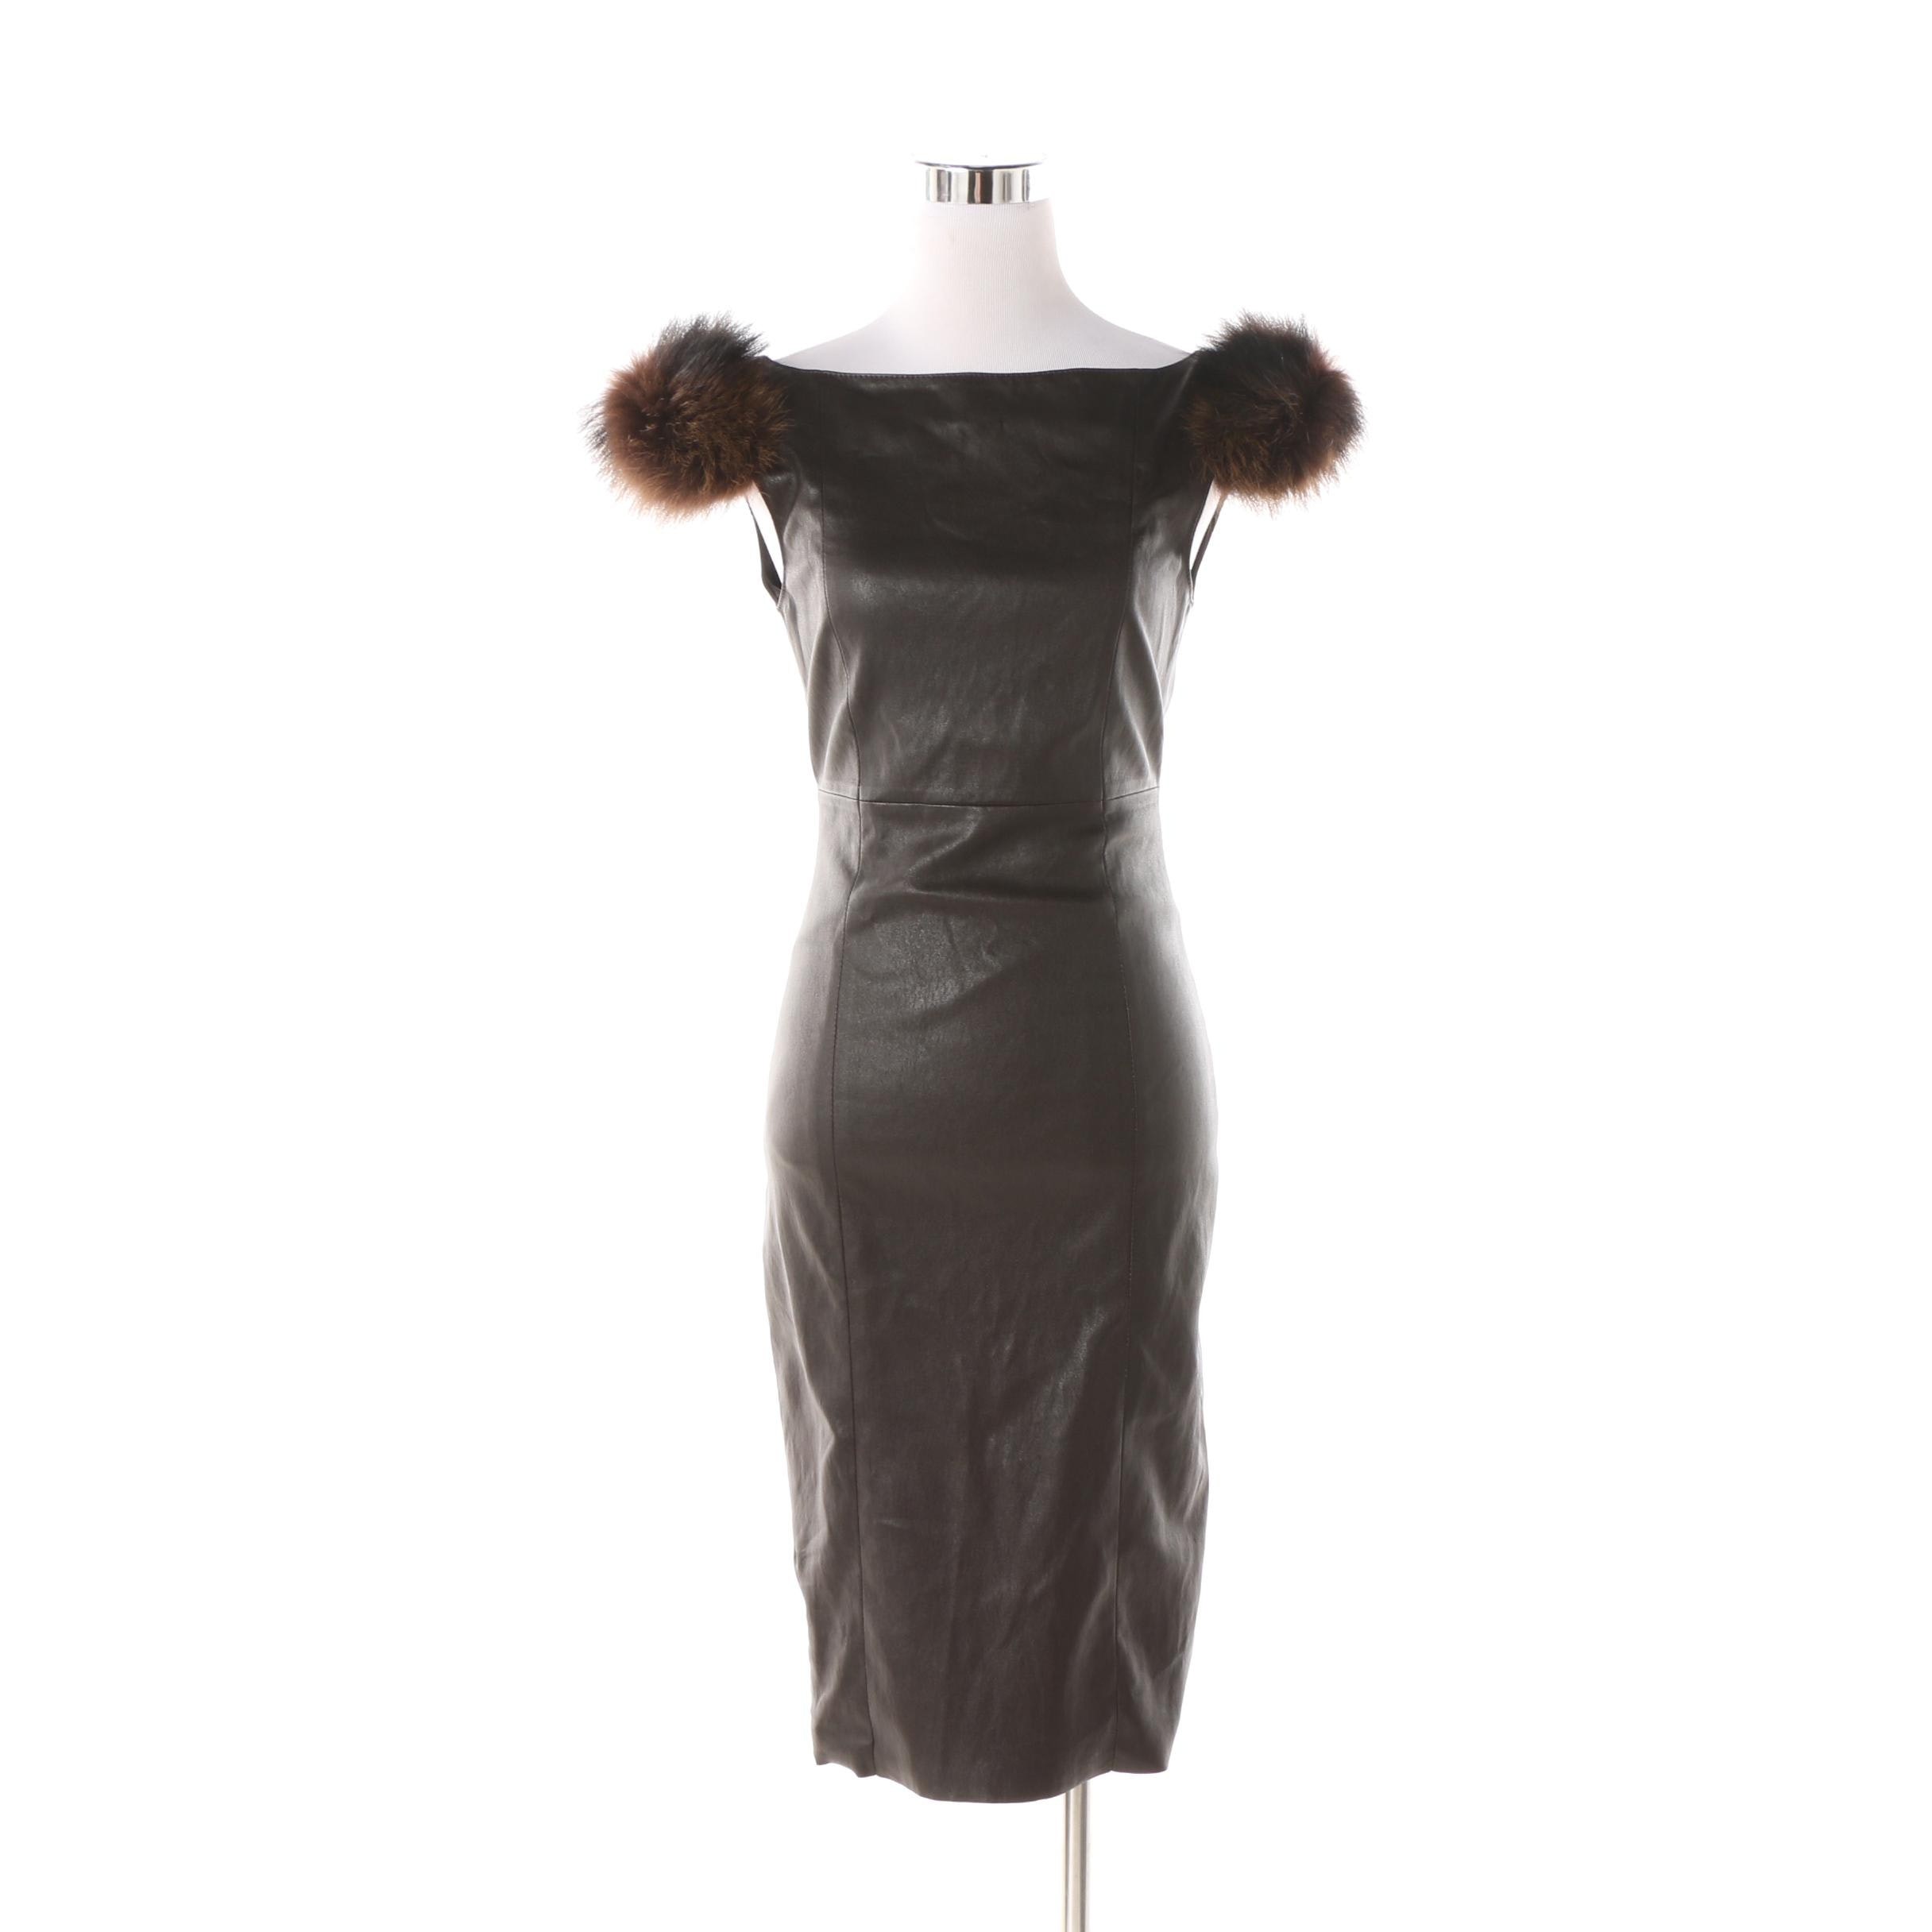 Thomas Wylde Brown Leather Raccoon Fur Trimmed Dress